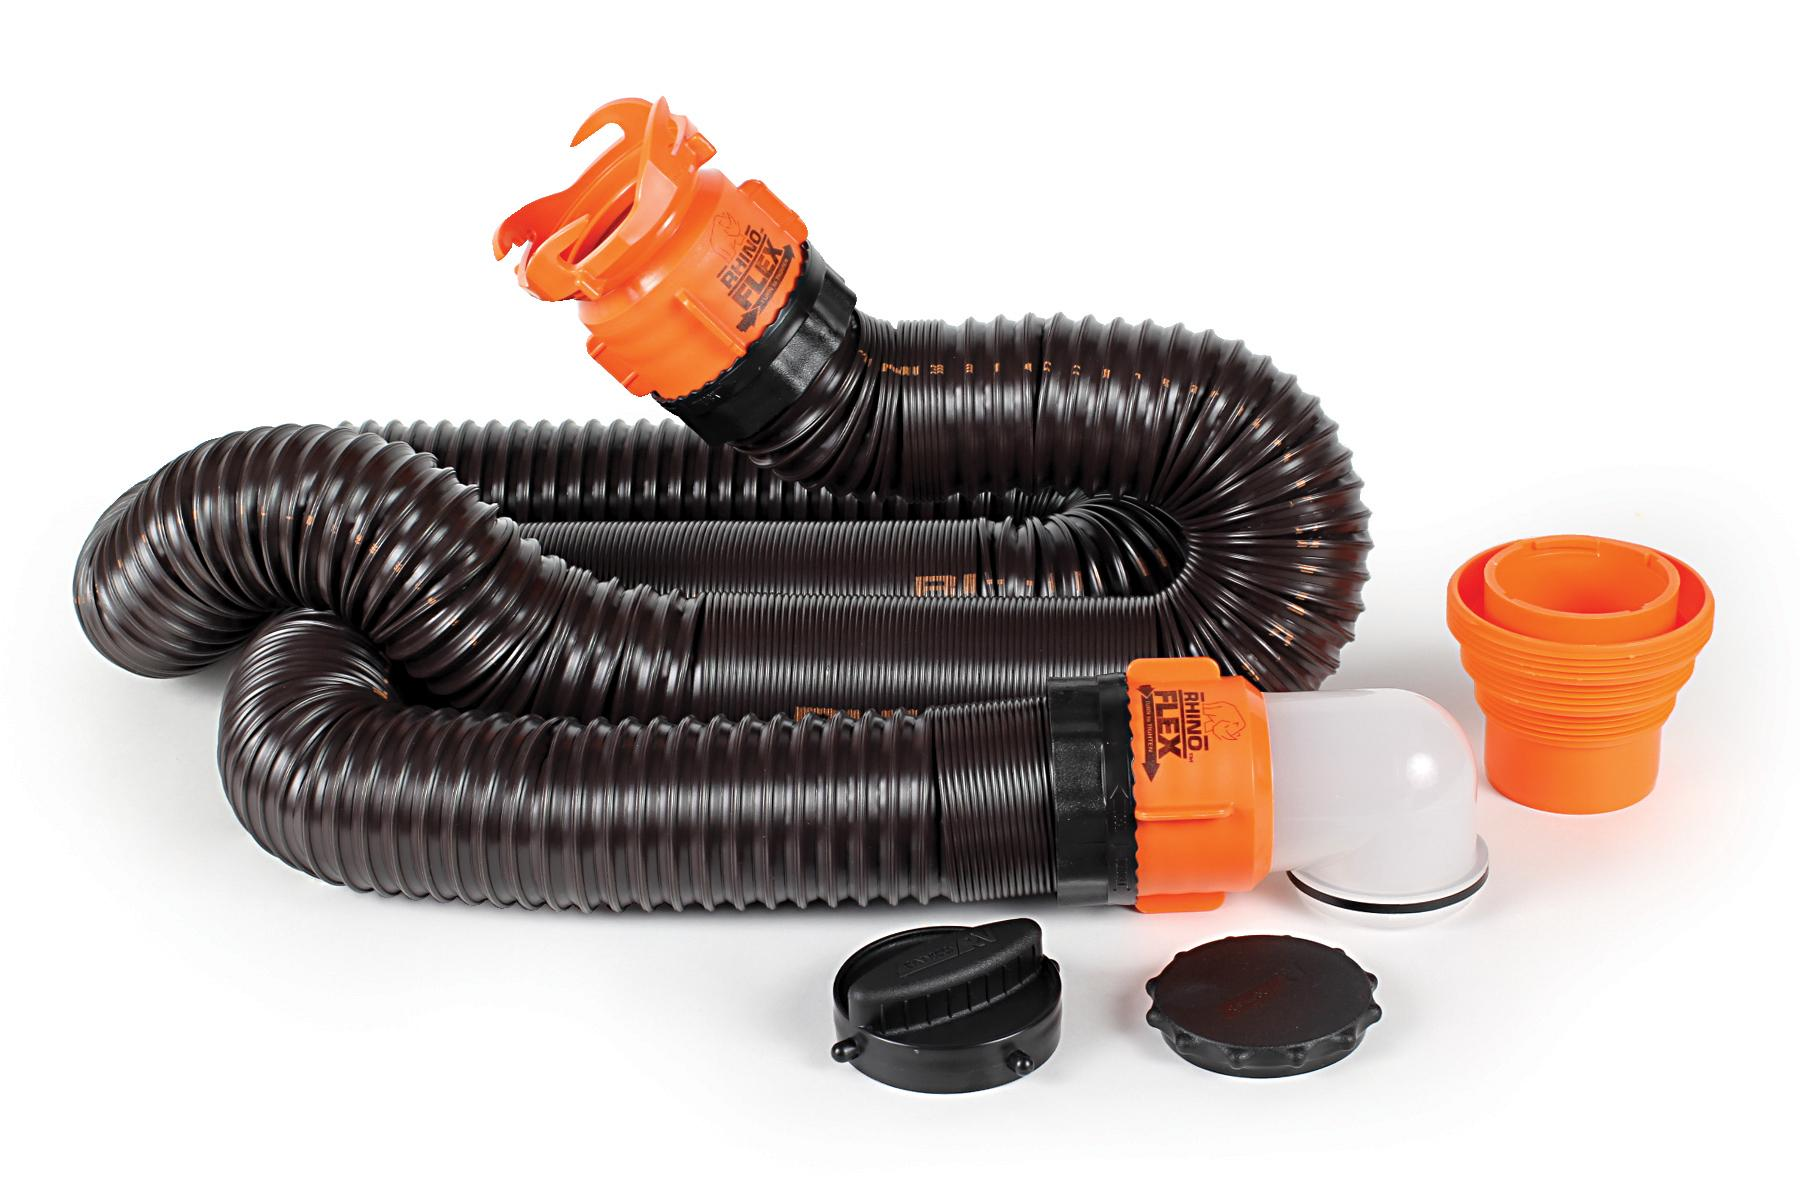 Camco 39761 Rhinoflex 15' RV Sewer Hose Kit with Swivel